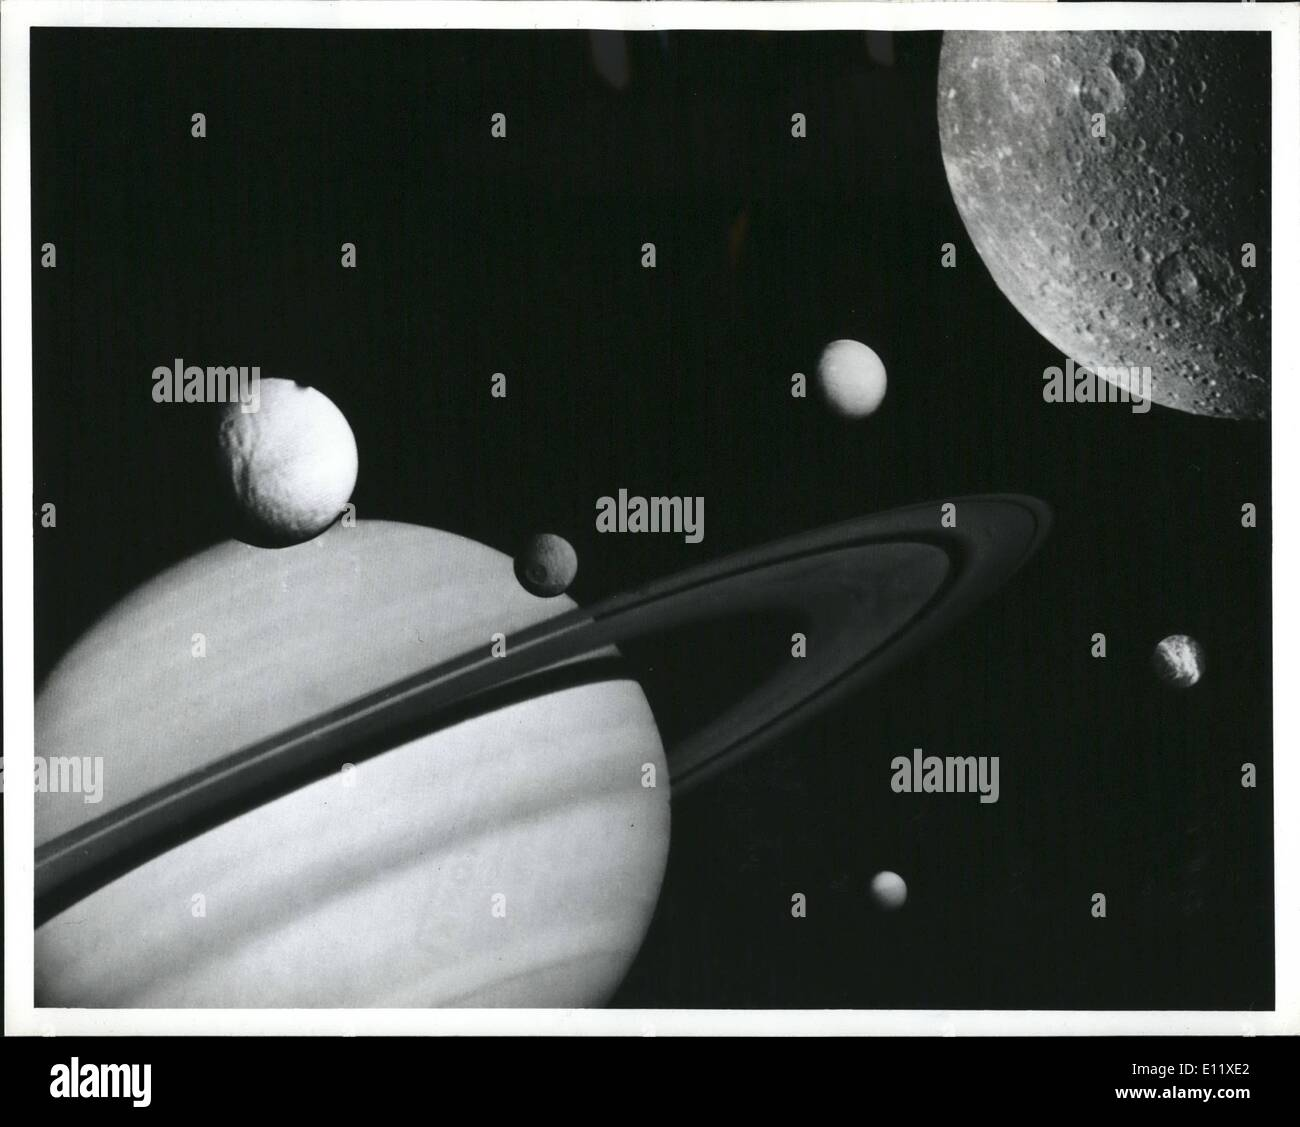 Feb. 02, 1981 - This montage was prepared from images taken by Nasa's voyager I during its flight through the saturnine system in November 1980. Saturn and its rings dominate this artist's view, which also shows six of the planet's 15 known satellites. Moving clockwise from the right, this view shows Tethys and pockmarked misses is front of the planet, this view shows Tethys and pockmarked mises in front of the planet, enceledus in front of the rings, Dione in the forefront to the left, rhea off the left edge of the kings, and titan in its distant orbit at top - Stock Image